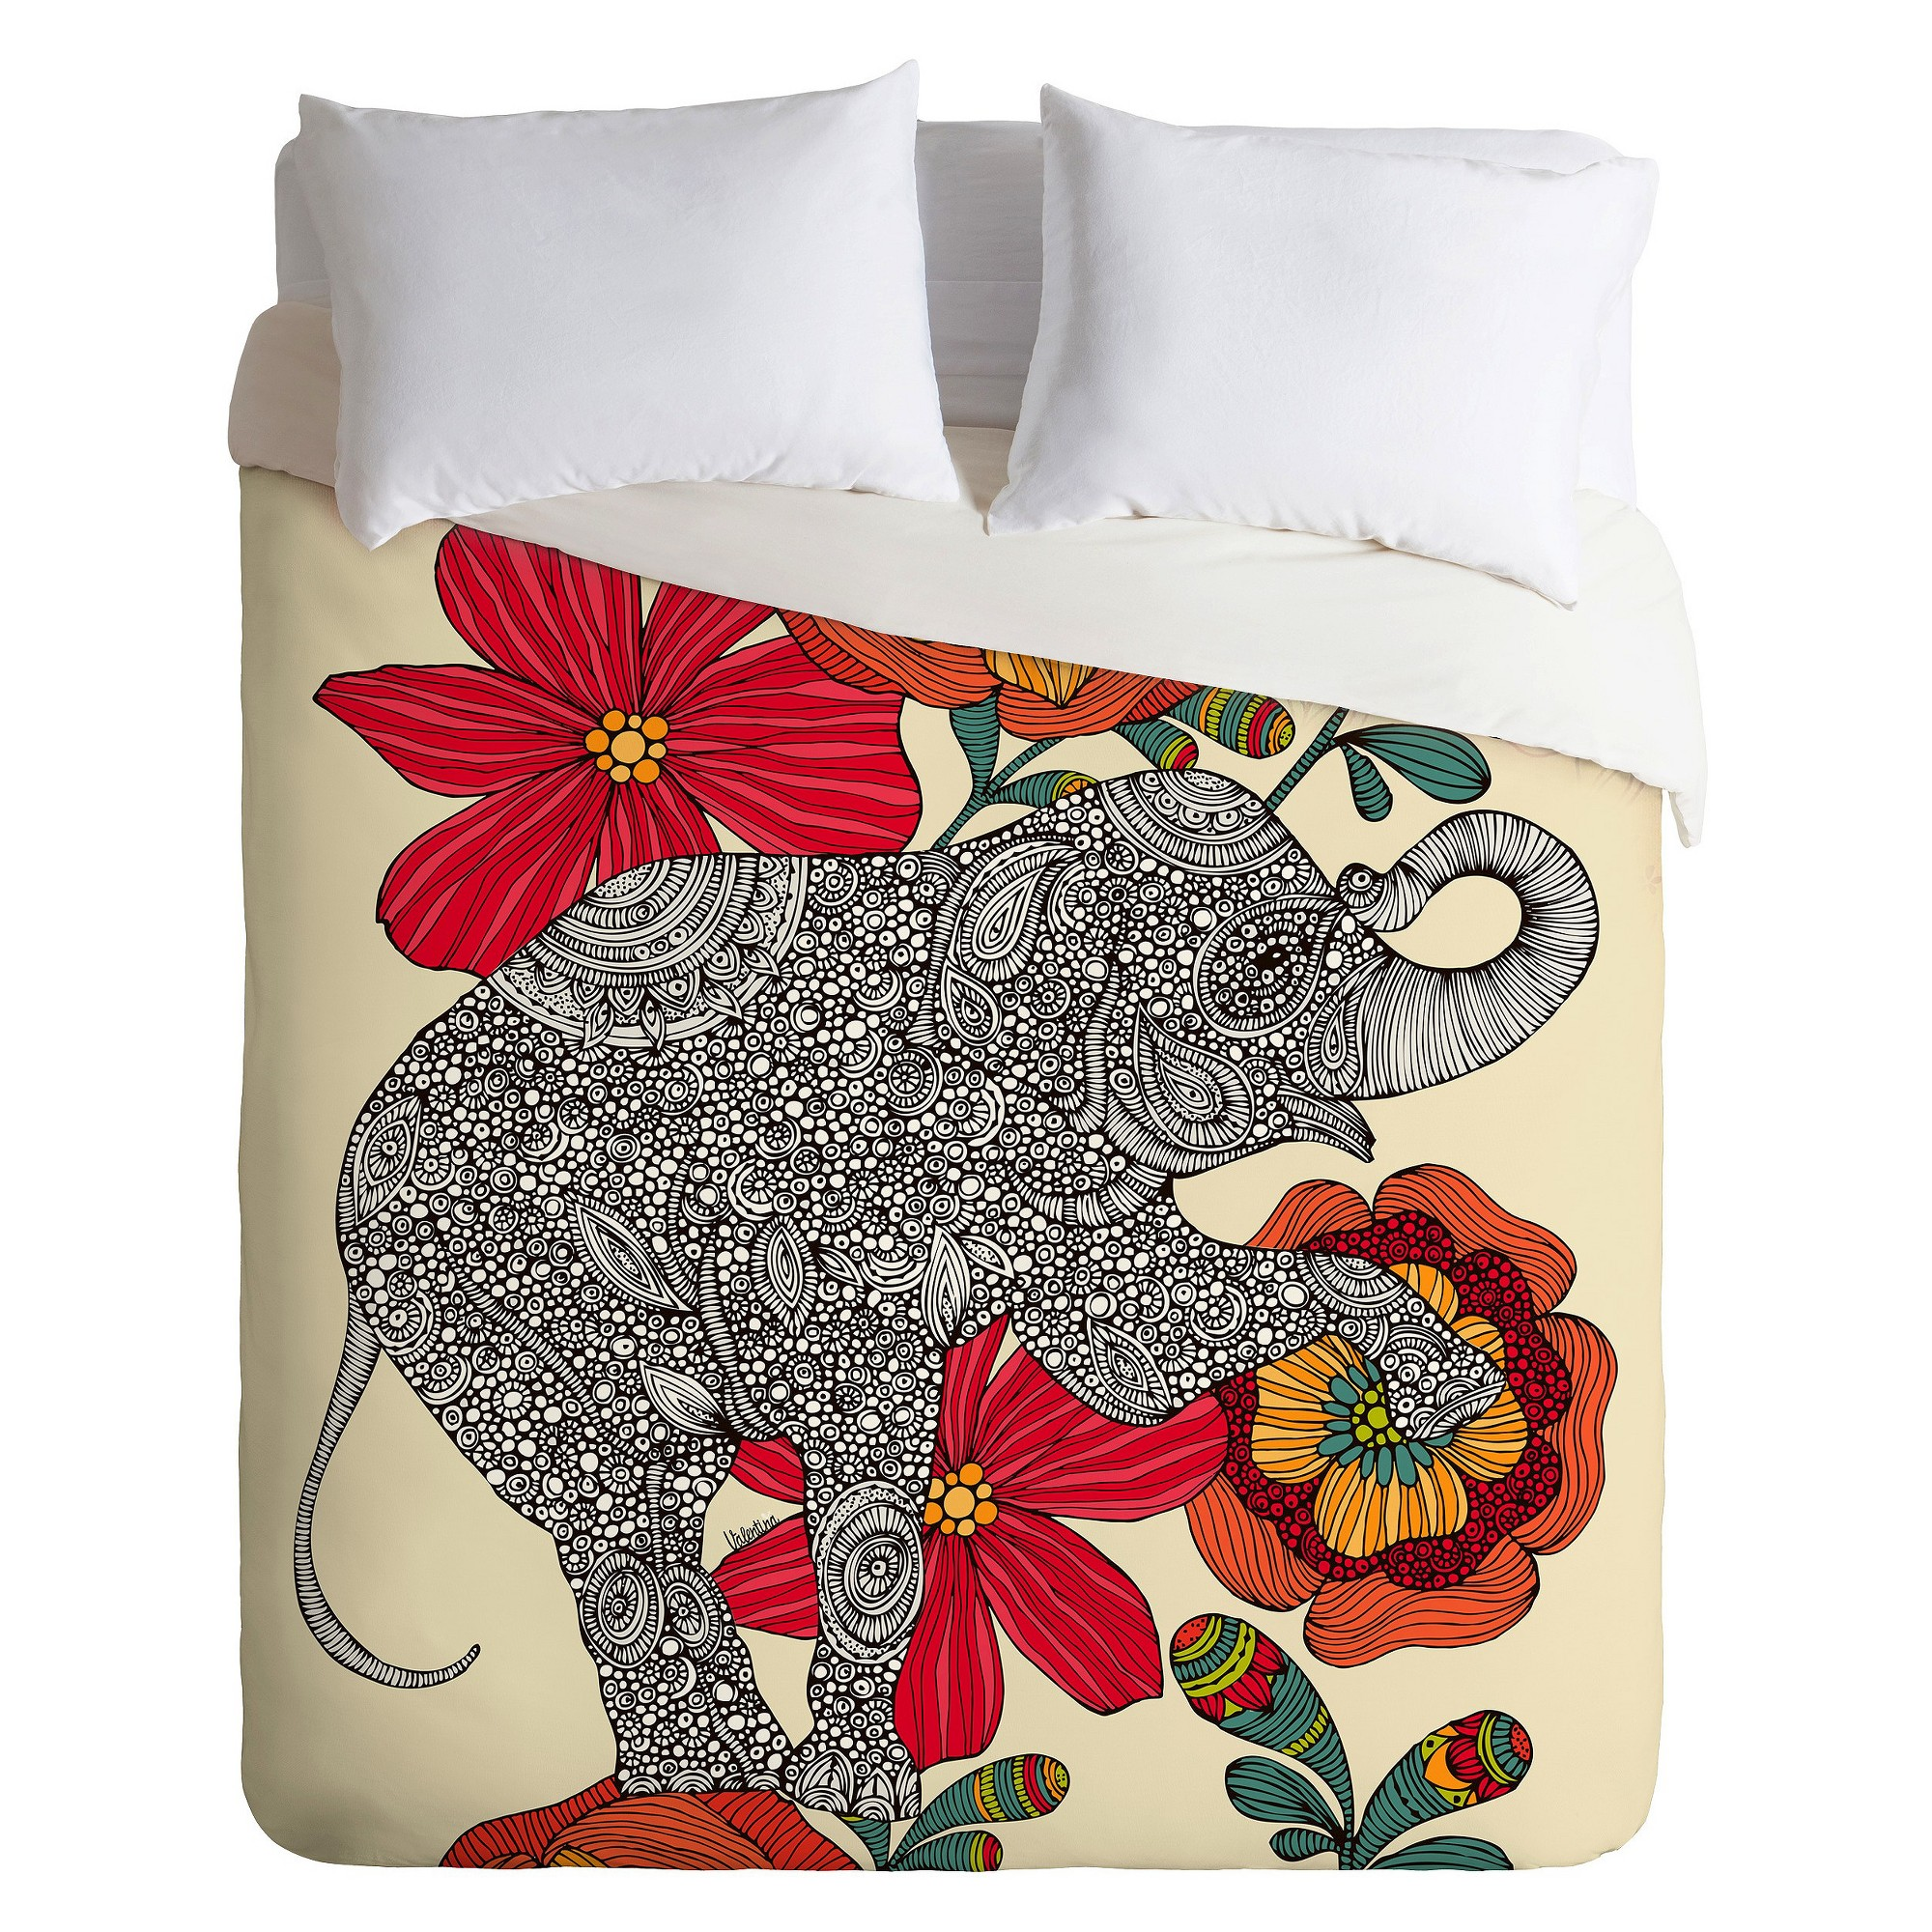 covers royal elephant pillow prints with king patch work size sheet duvet bed lali cover